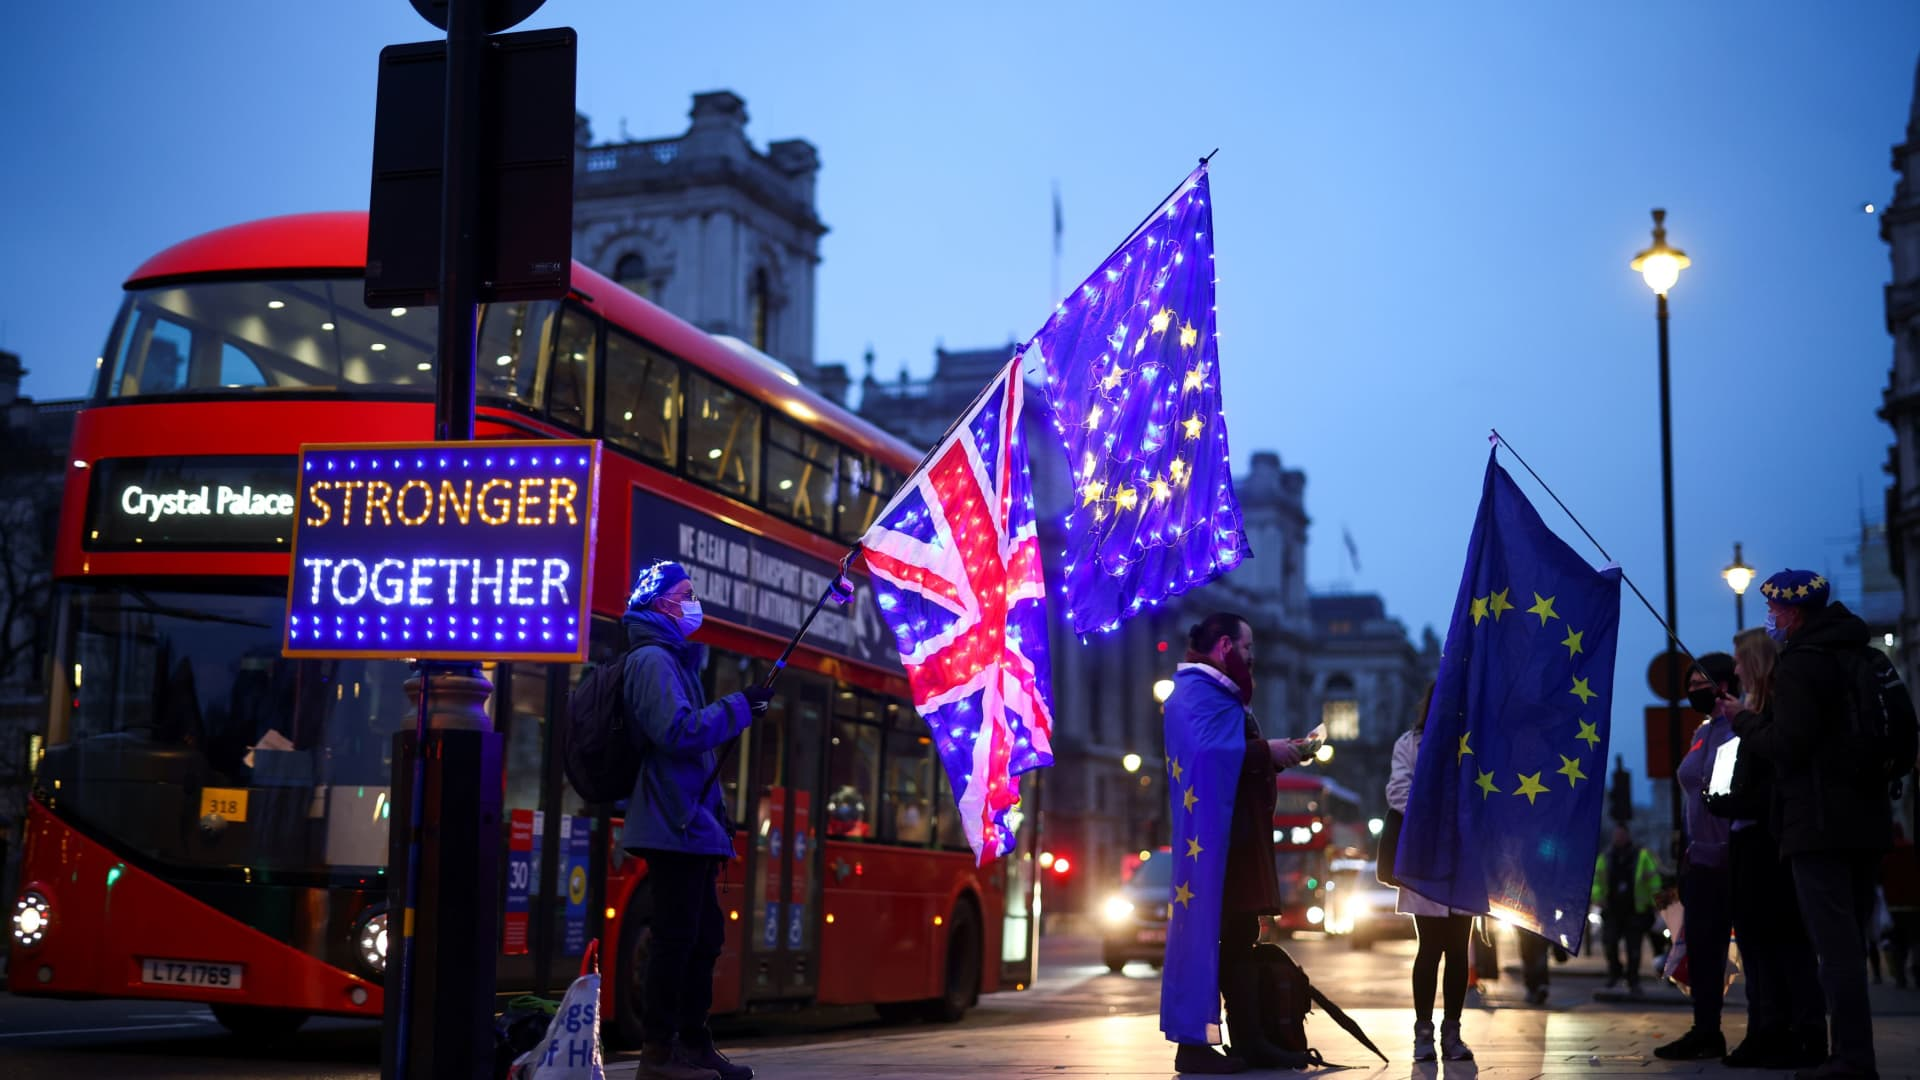 Anti-Brexit protesters demonstrate outside the Houses of Parliament in London, Britain December 9, 2020.